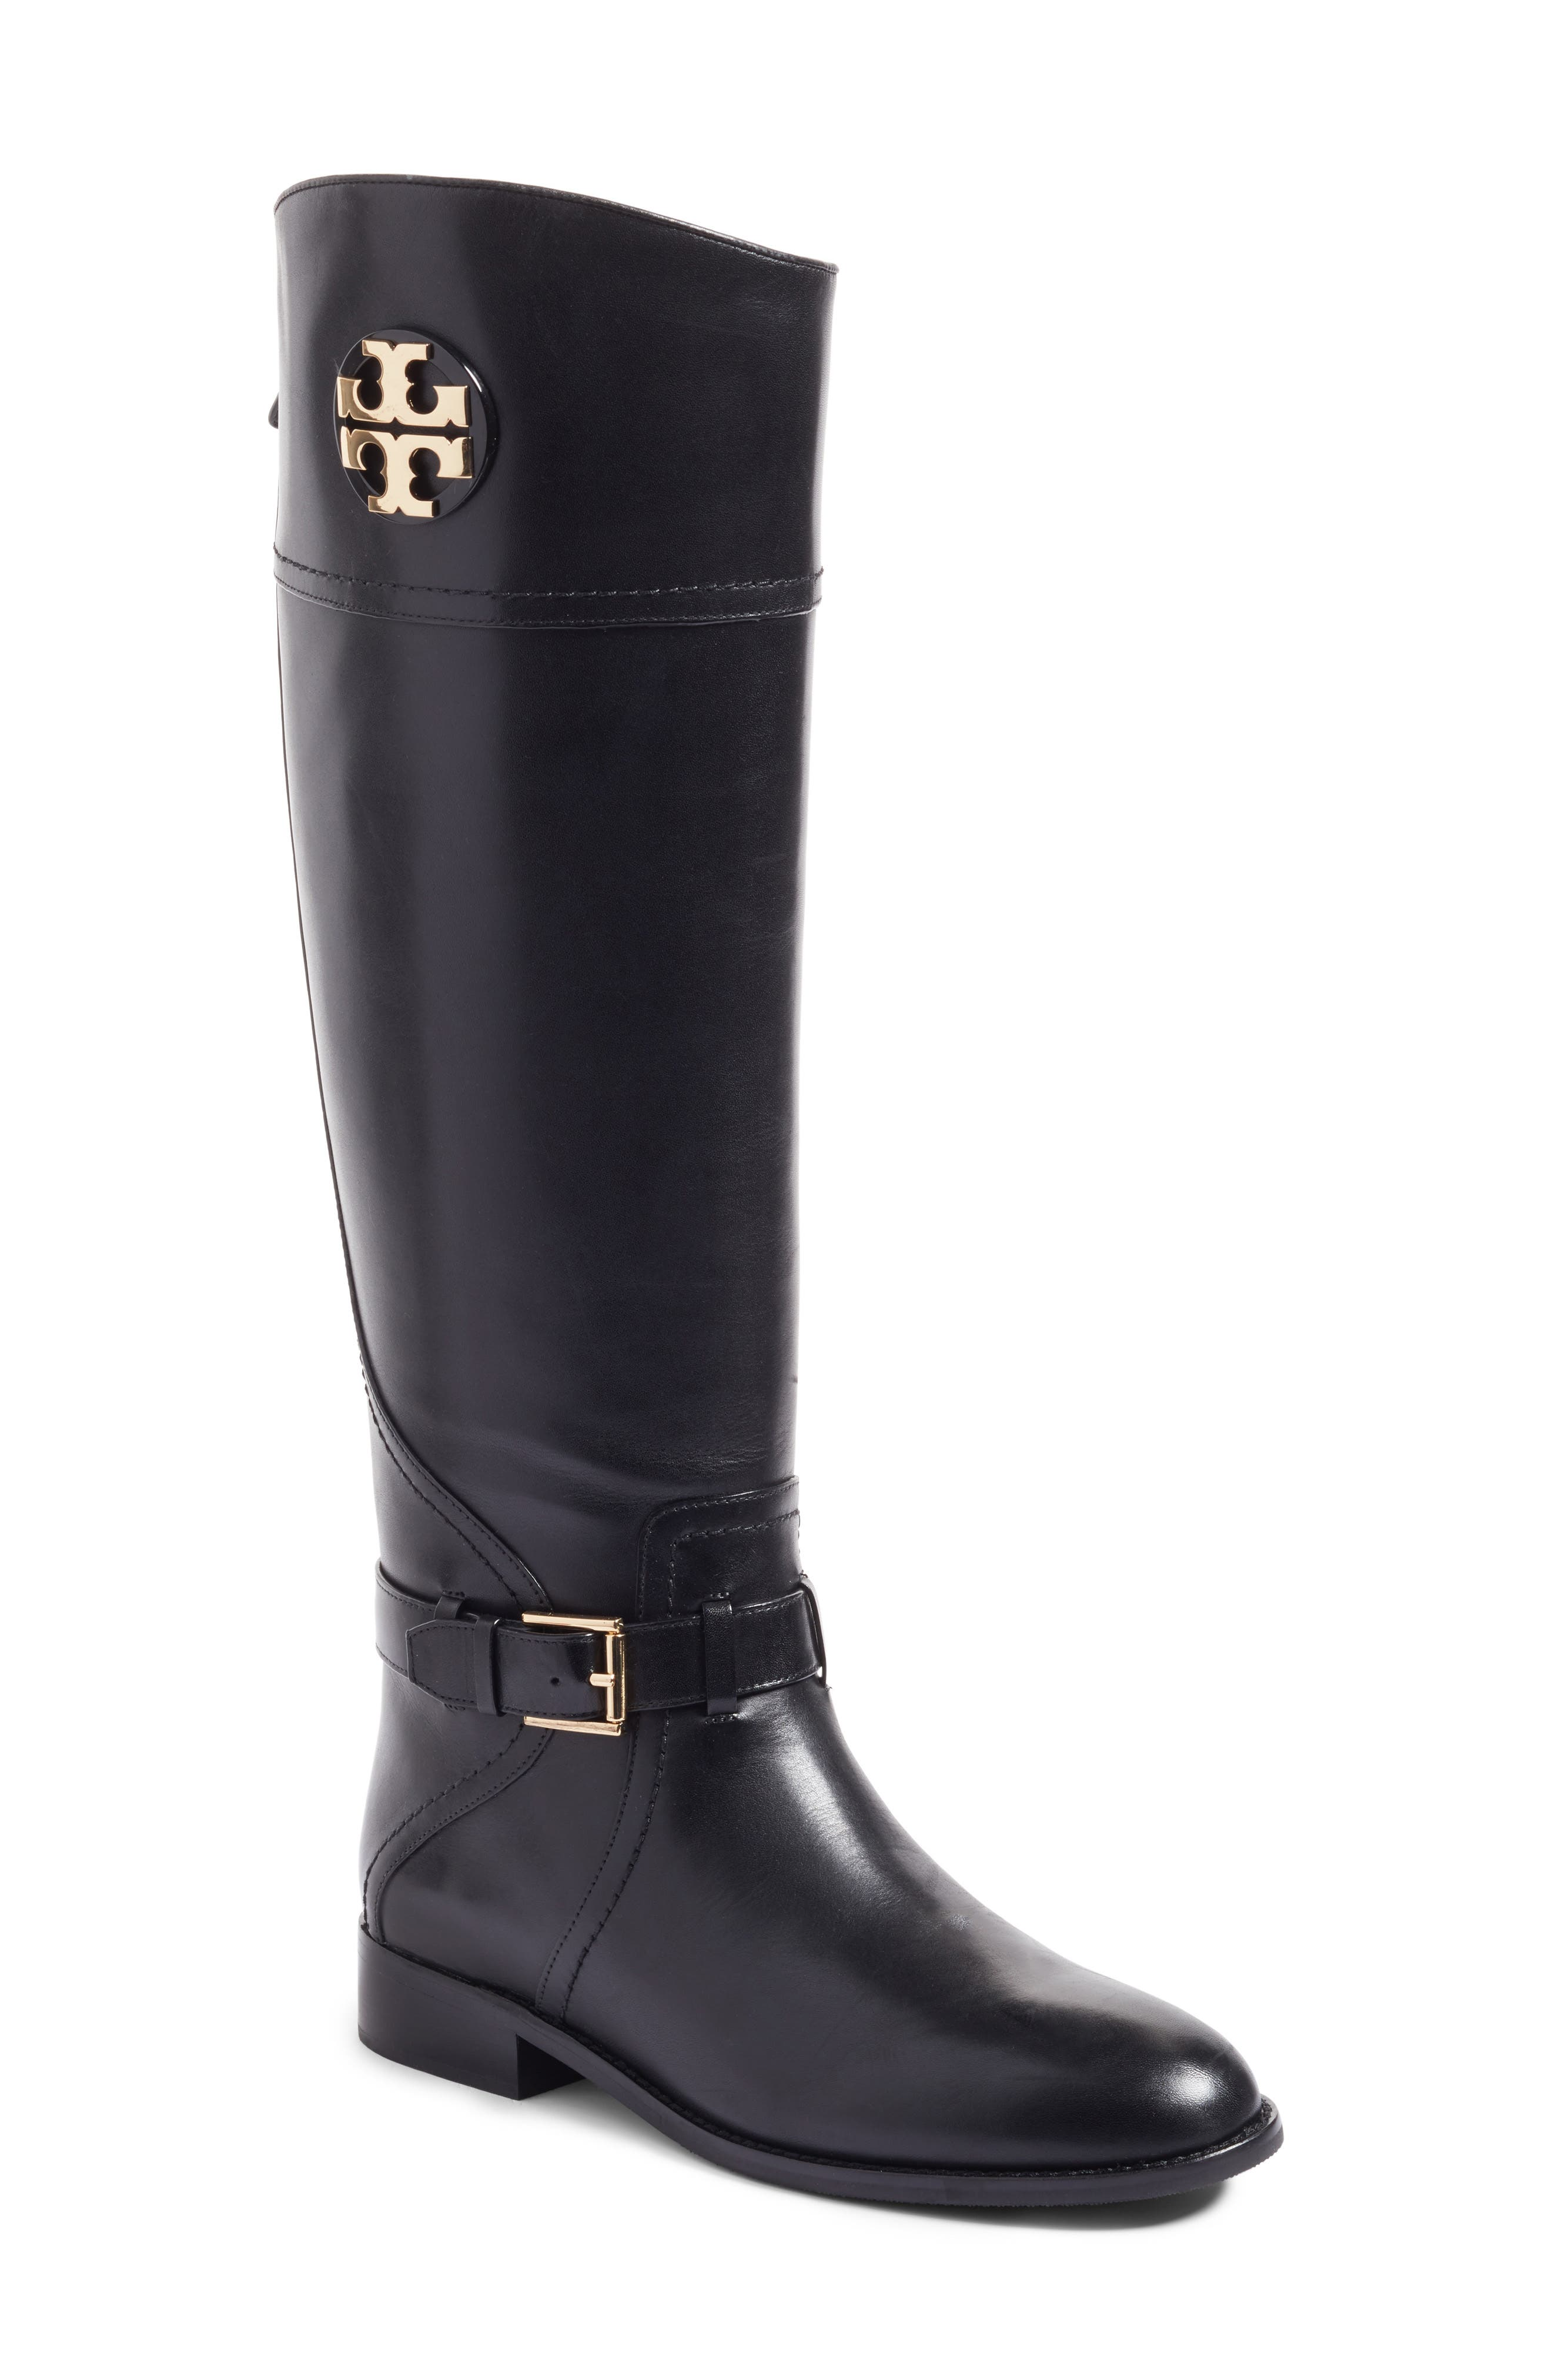 TORY BURCH, Adeline Boot, Main thumbnail 1, color, 001